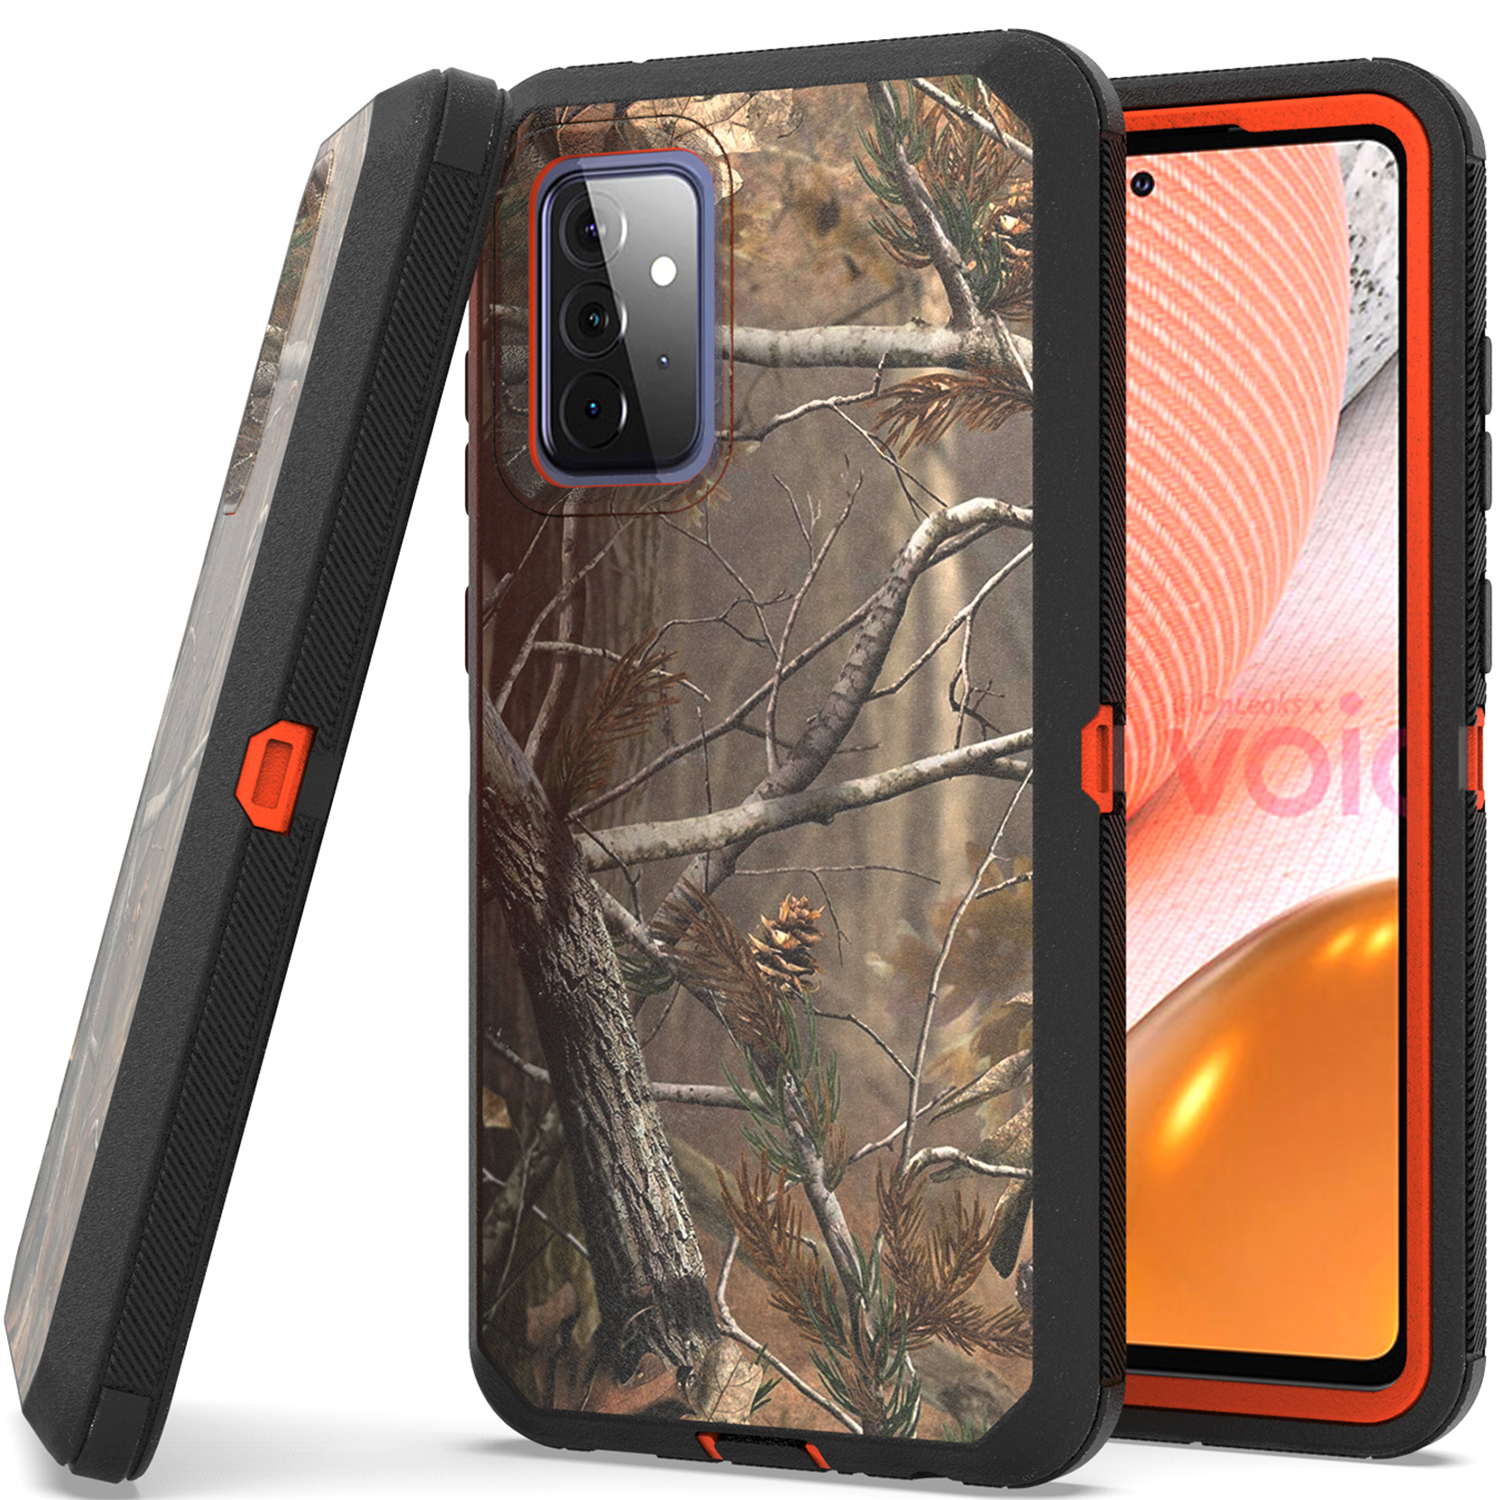 uk availability e8702 aace7 Details about Black Belt Clip Holster Phone Cover Shockproof Case for  Huawei Mate 10 Pro